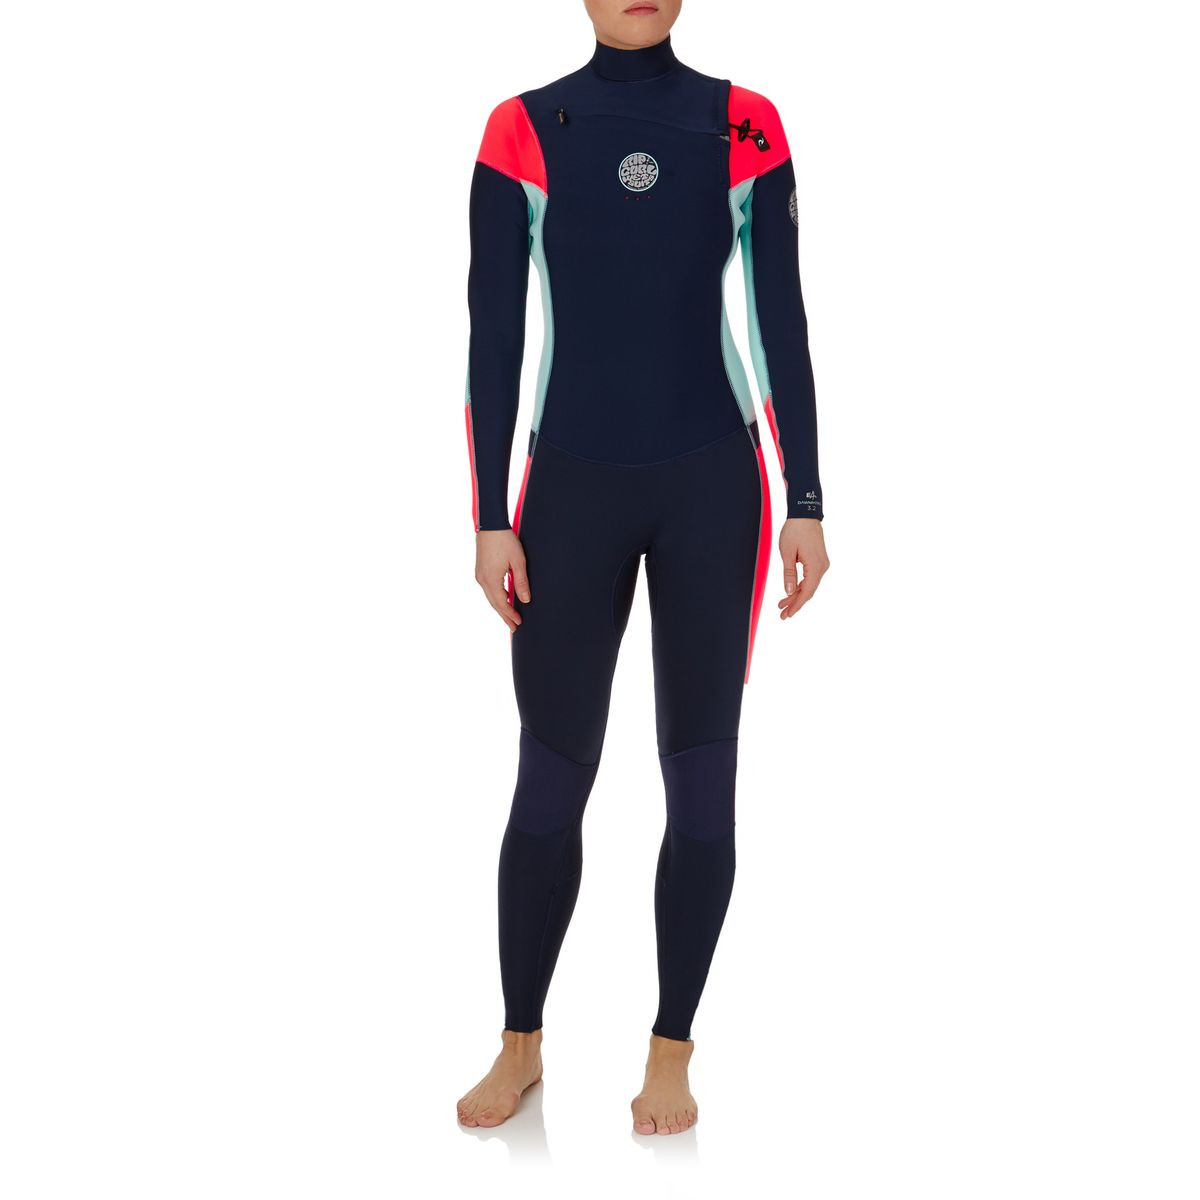 Rip Curl Womens Dawn Patrol 3/2mm 2017 Chest Zip Wetsuit - Navy